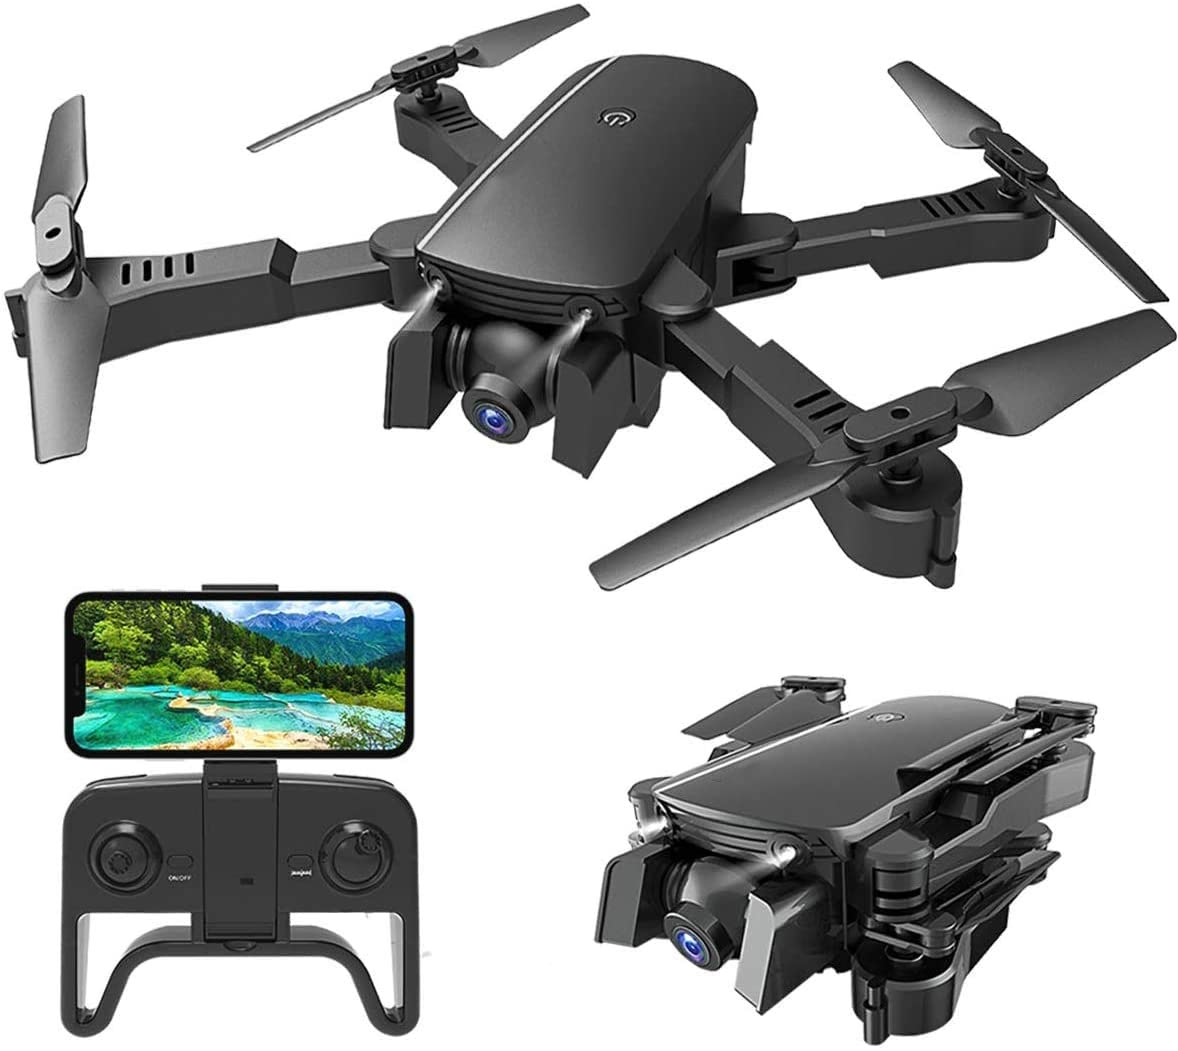 RCTOYS wifi FPV Drones with Camera